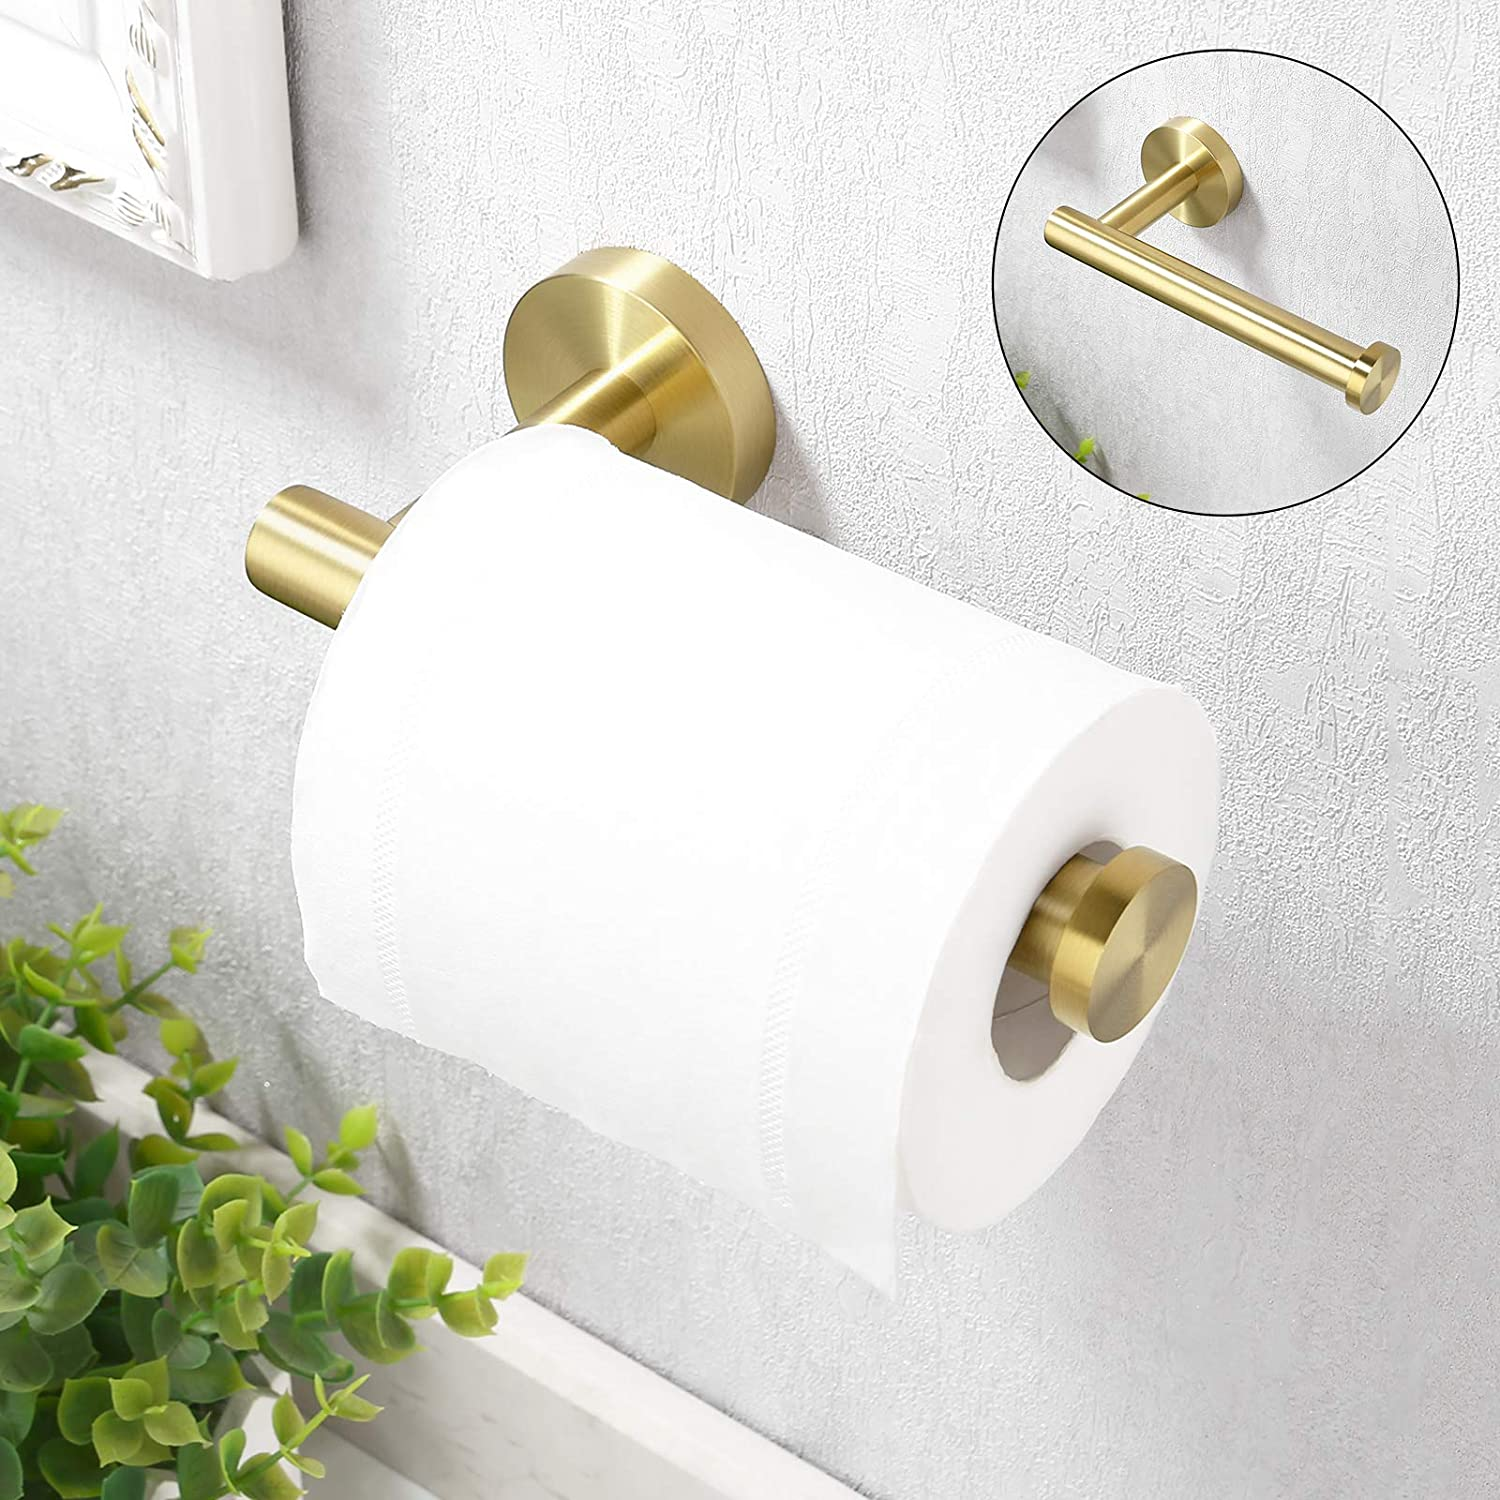 Toilet Paper Wall Mount (Product Only, No Installation)